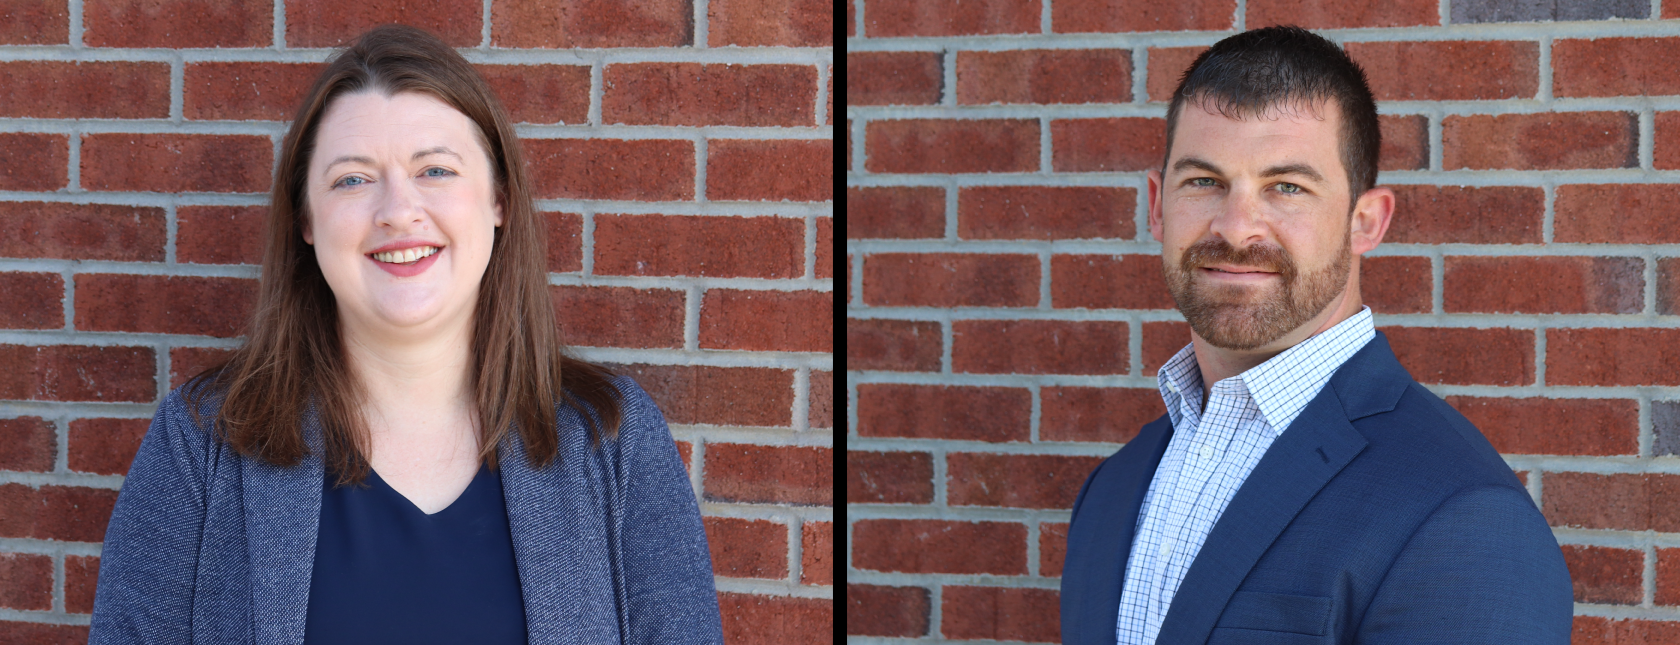 Jennifer Franklin and Jacob Wyatt Promoted to Assistant Vice President